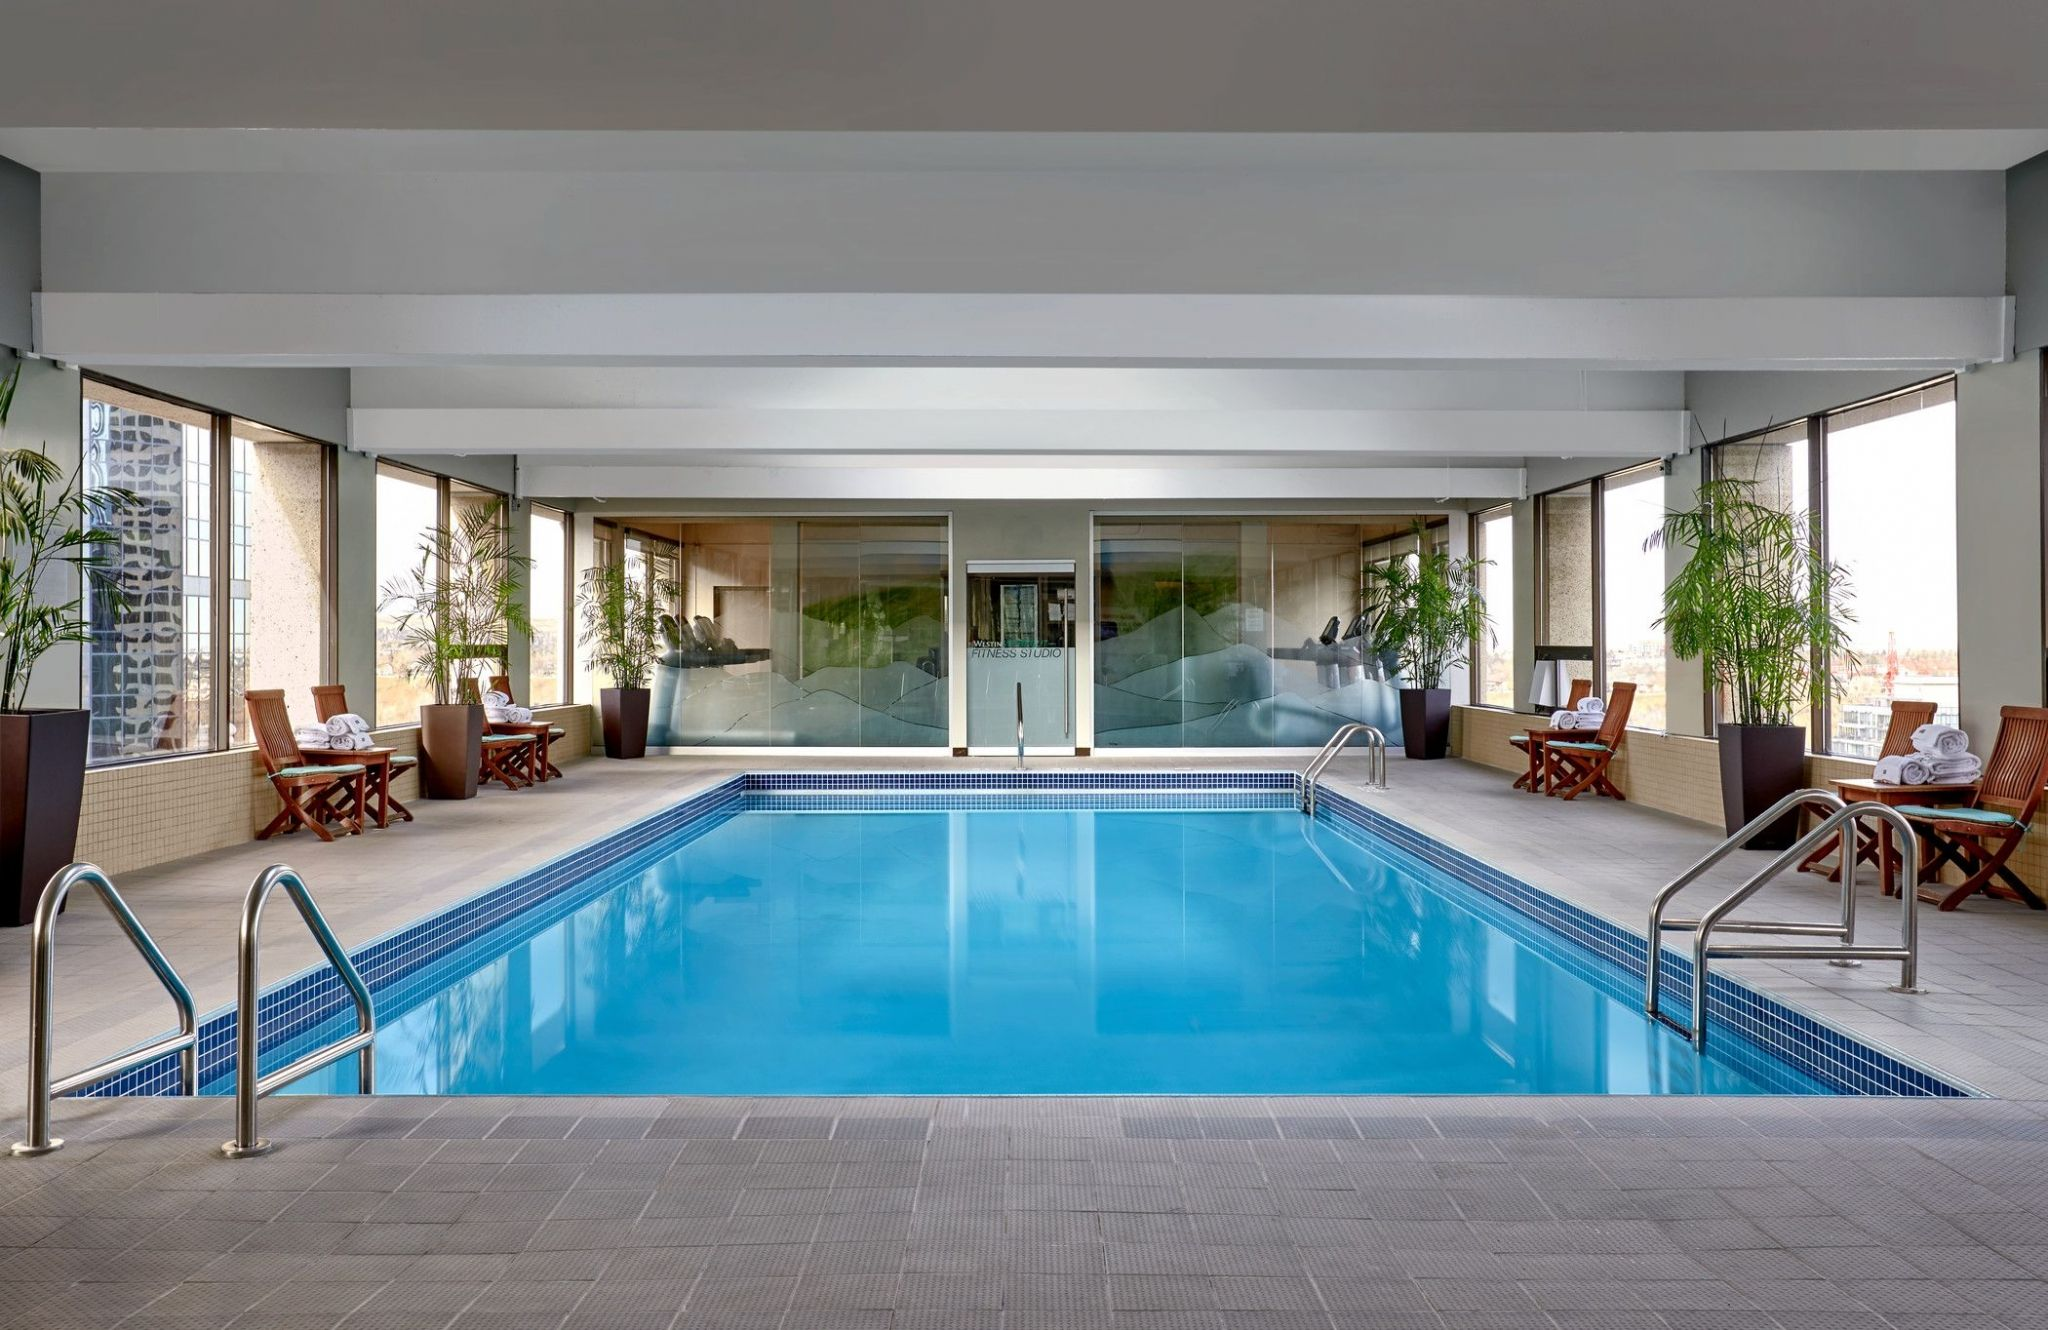 Calgary Hotel Accommodation - Indoor Pool